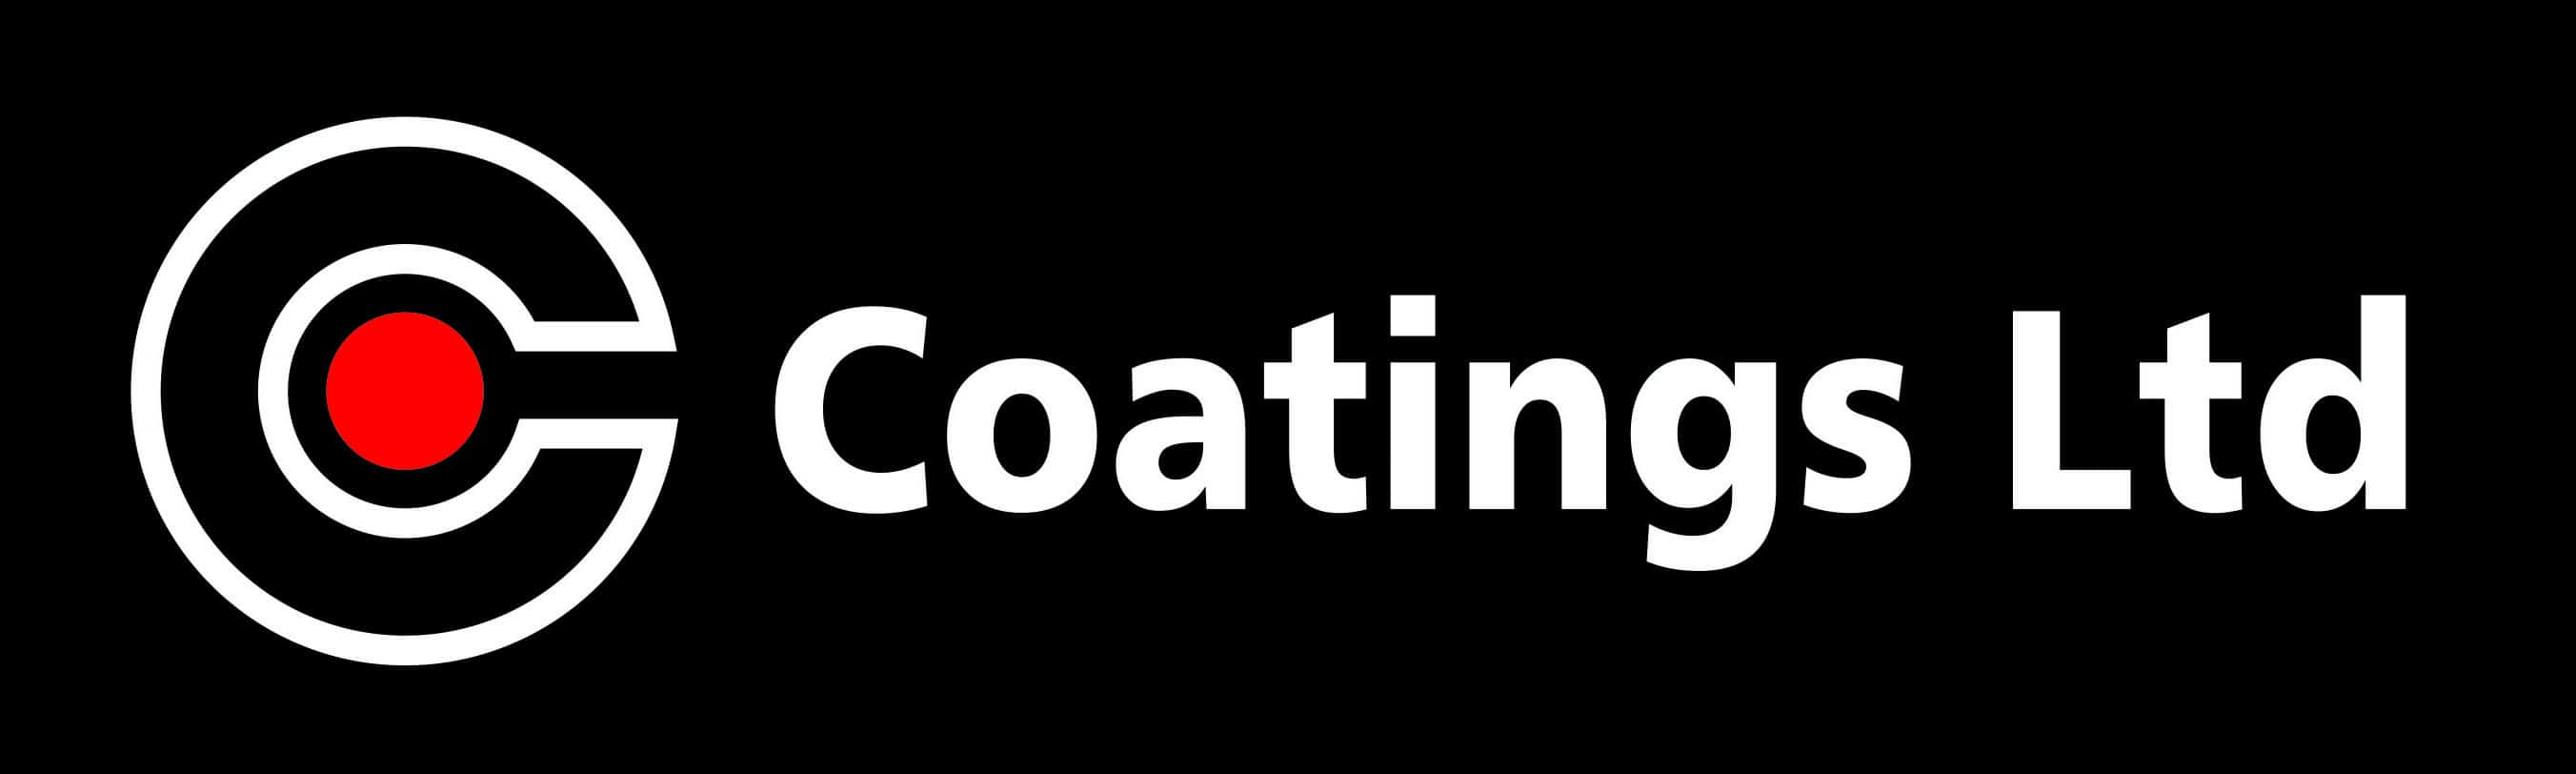 Coatings Ltd